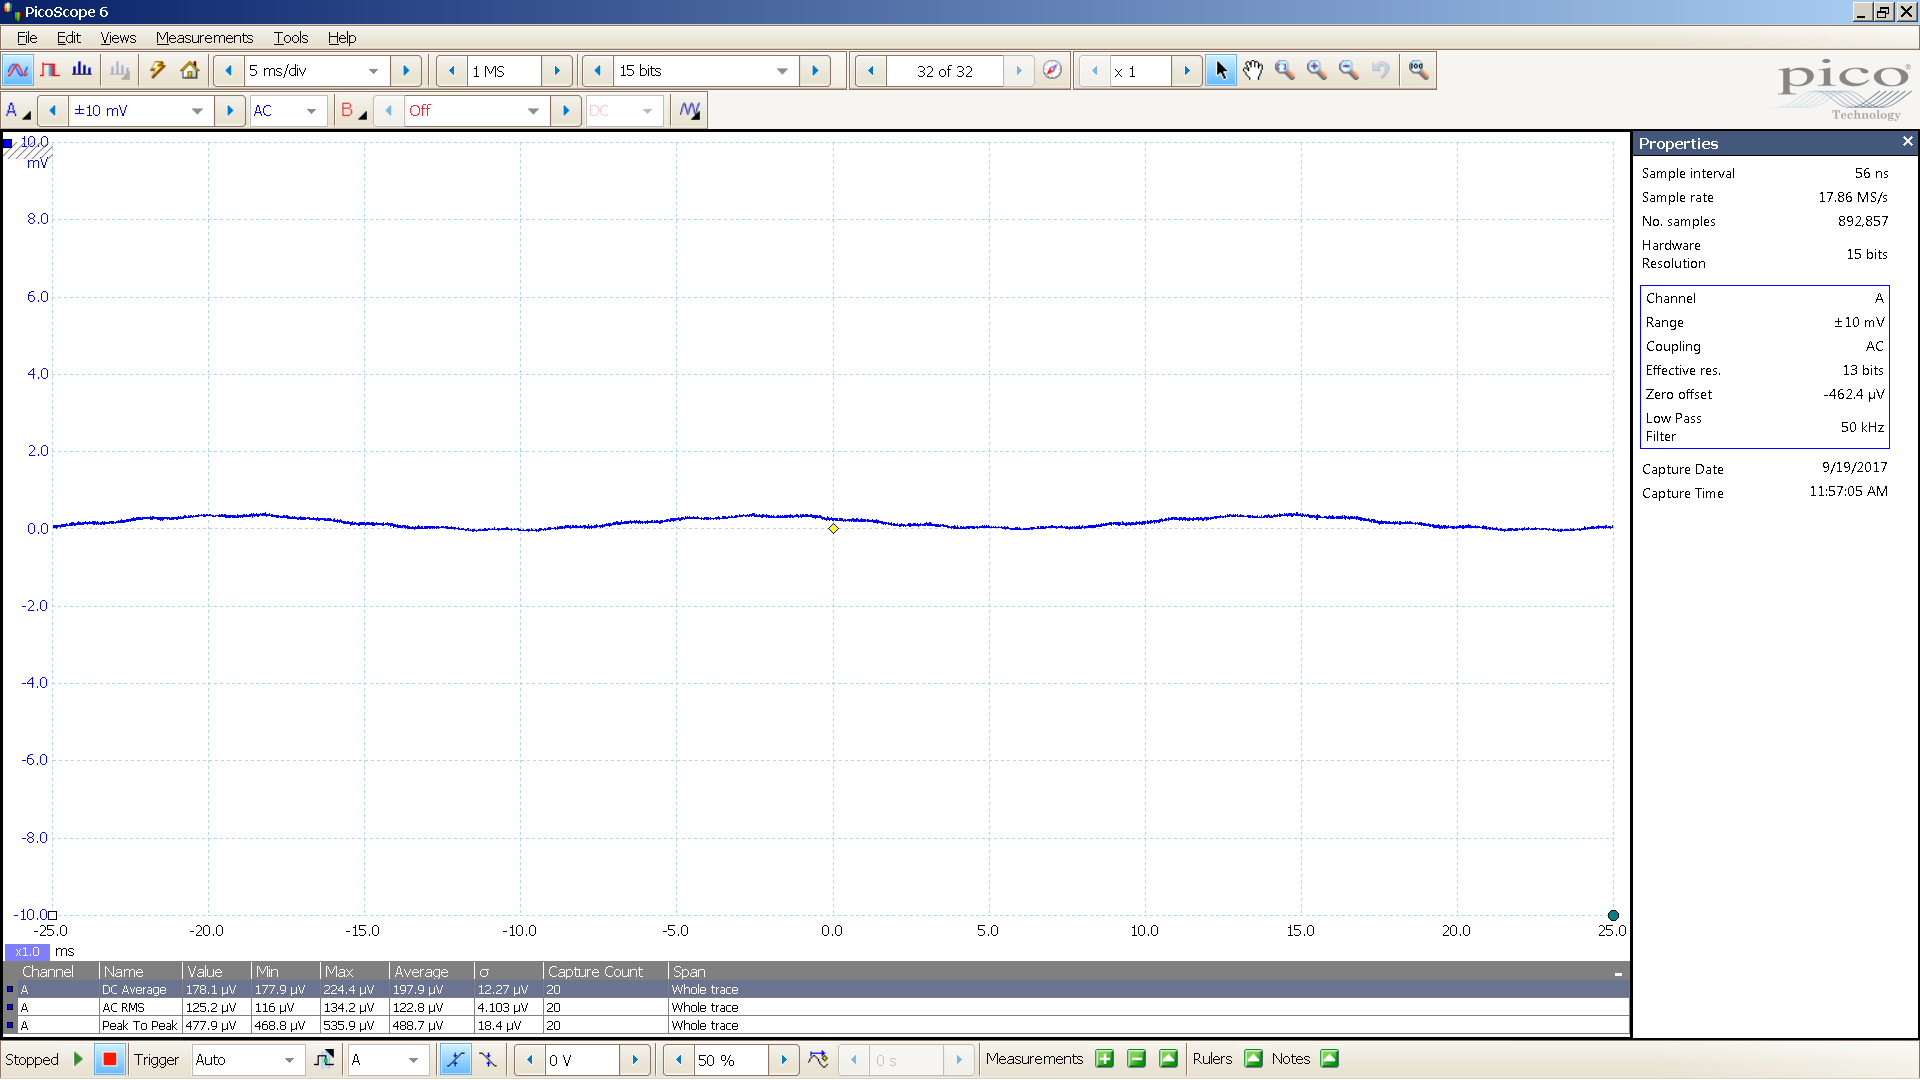 PS-III SMPS + LC 24V 123 uVrms 488 uVpp ripple 650mA load 50KHz BW filter 2mV 5mS div.png